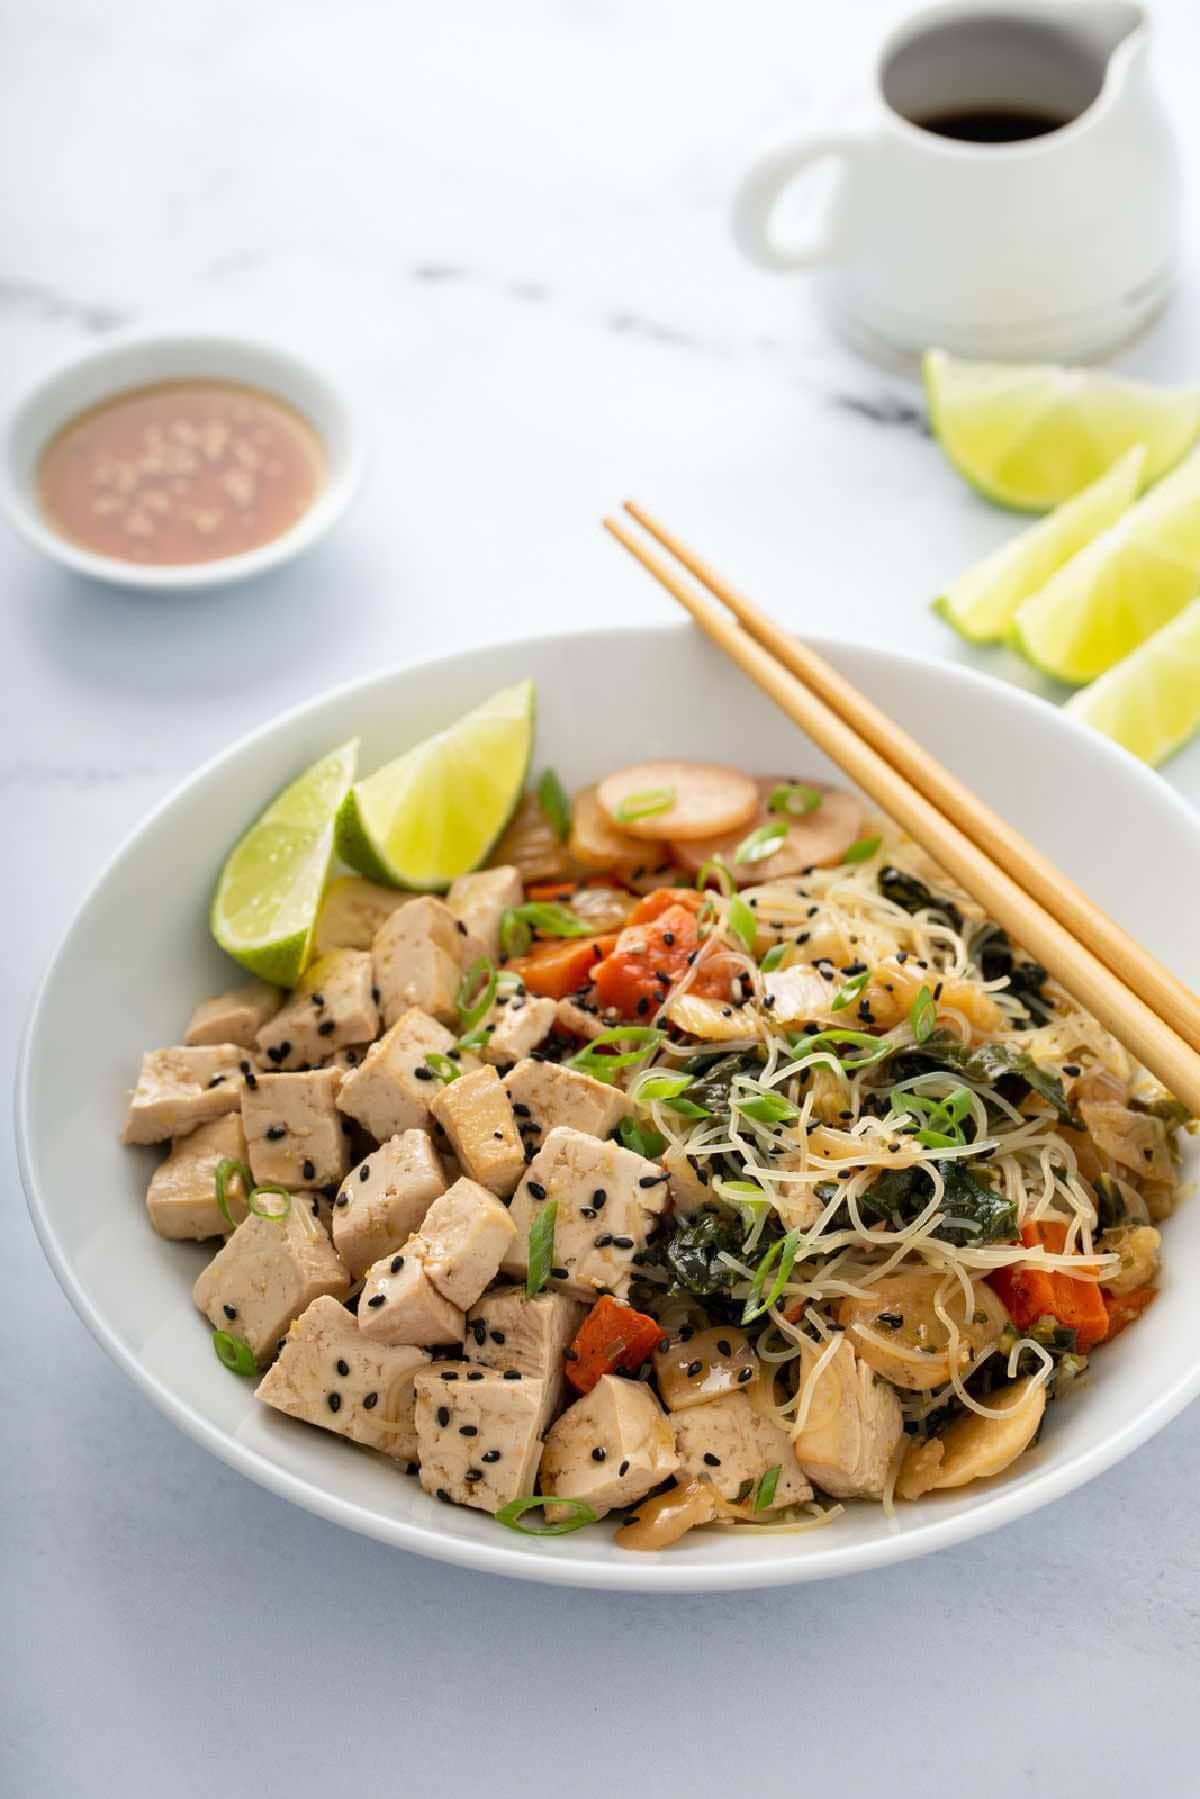 Low FODMAP Meal Delivery Chicken Power Bowl with vegetables and chopsticks.